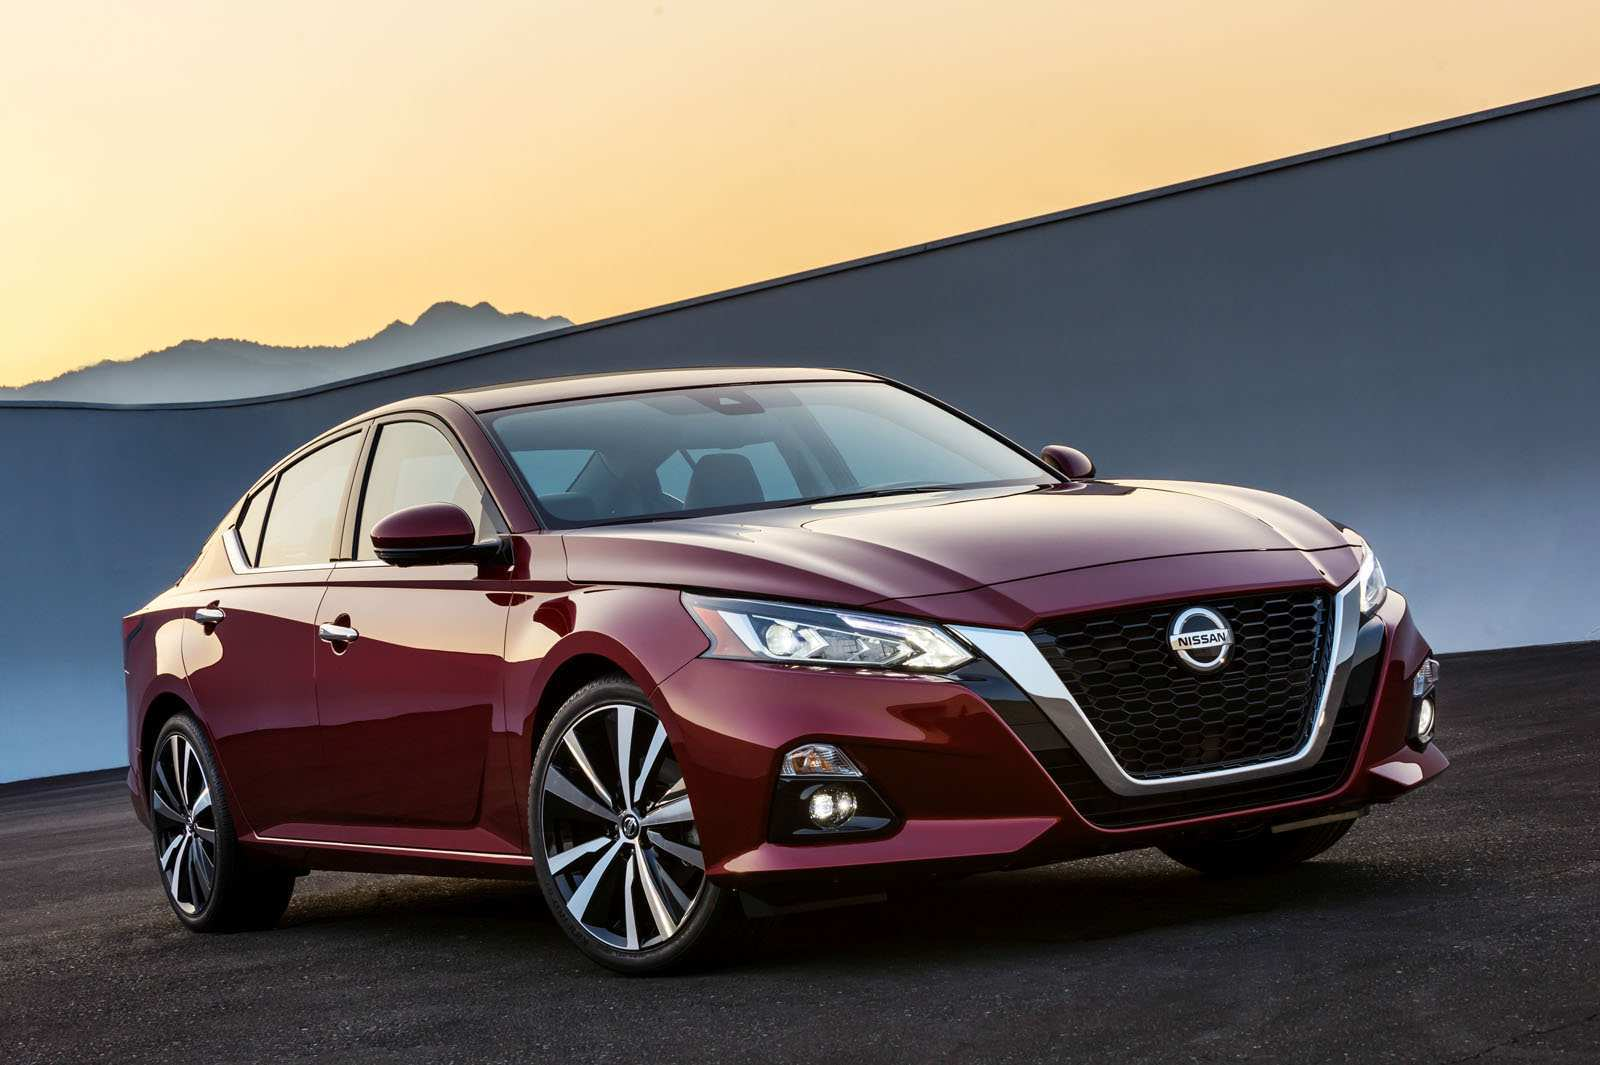 54 New 2019 Nissan Altima Engine Engine